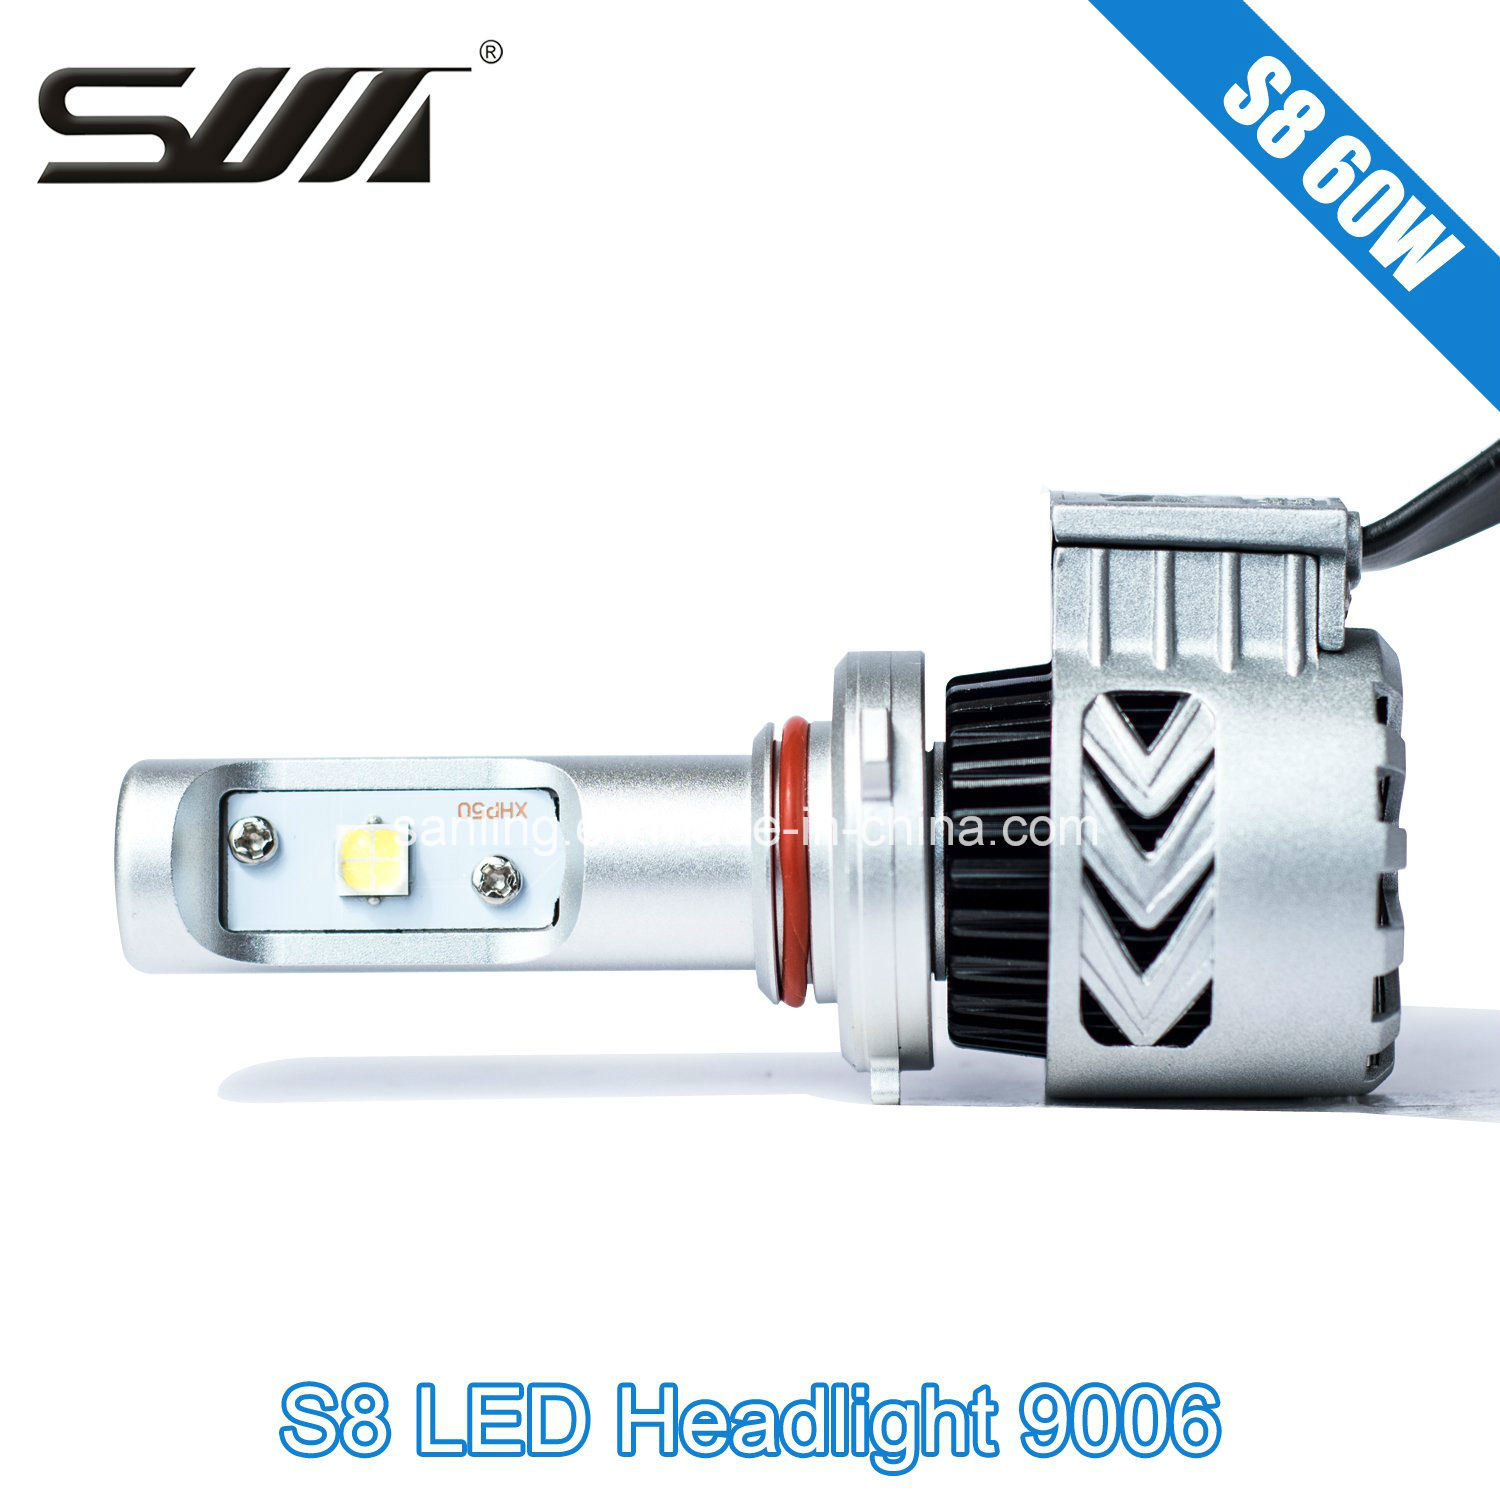 High Efficiency 60W S8 Car Light 9006/Hb4 LED Headlight Bulbs